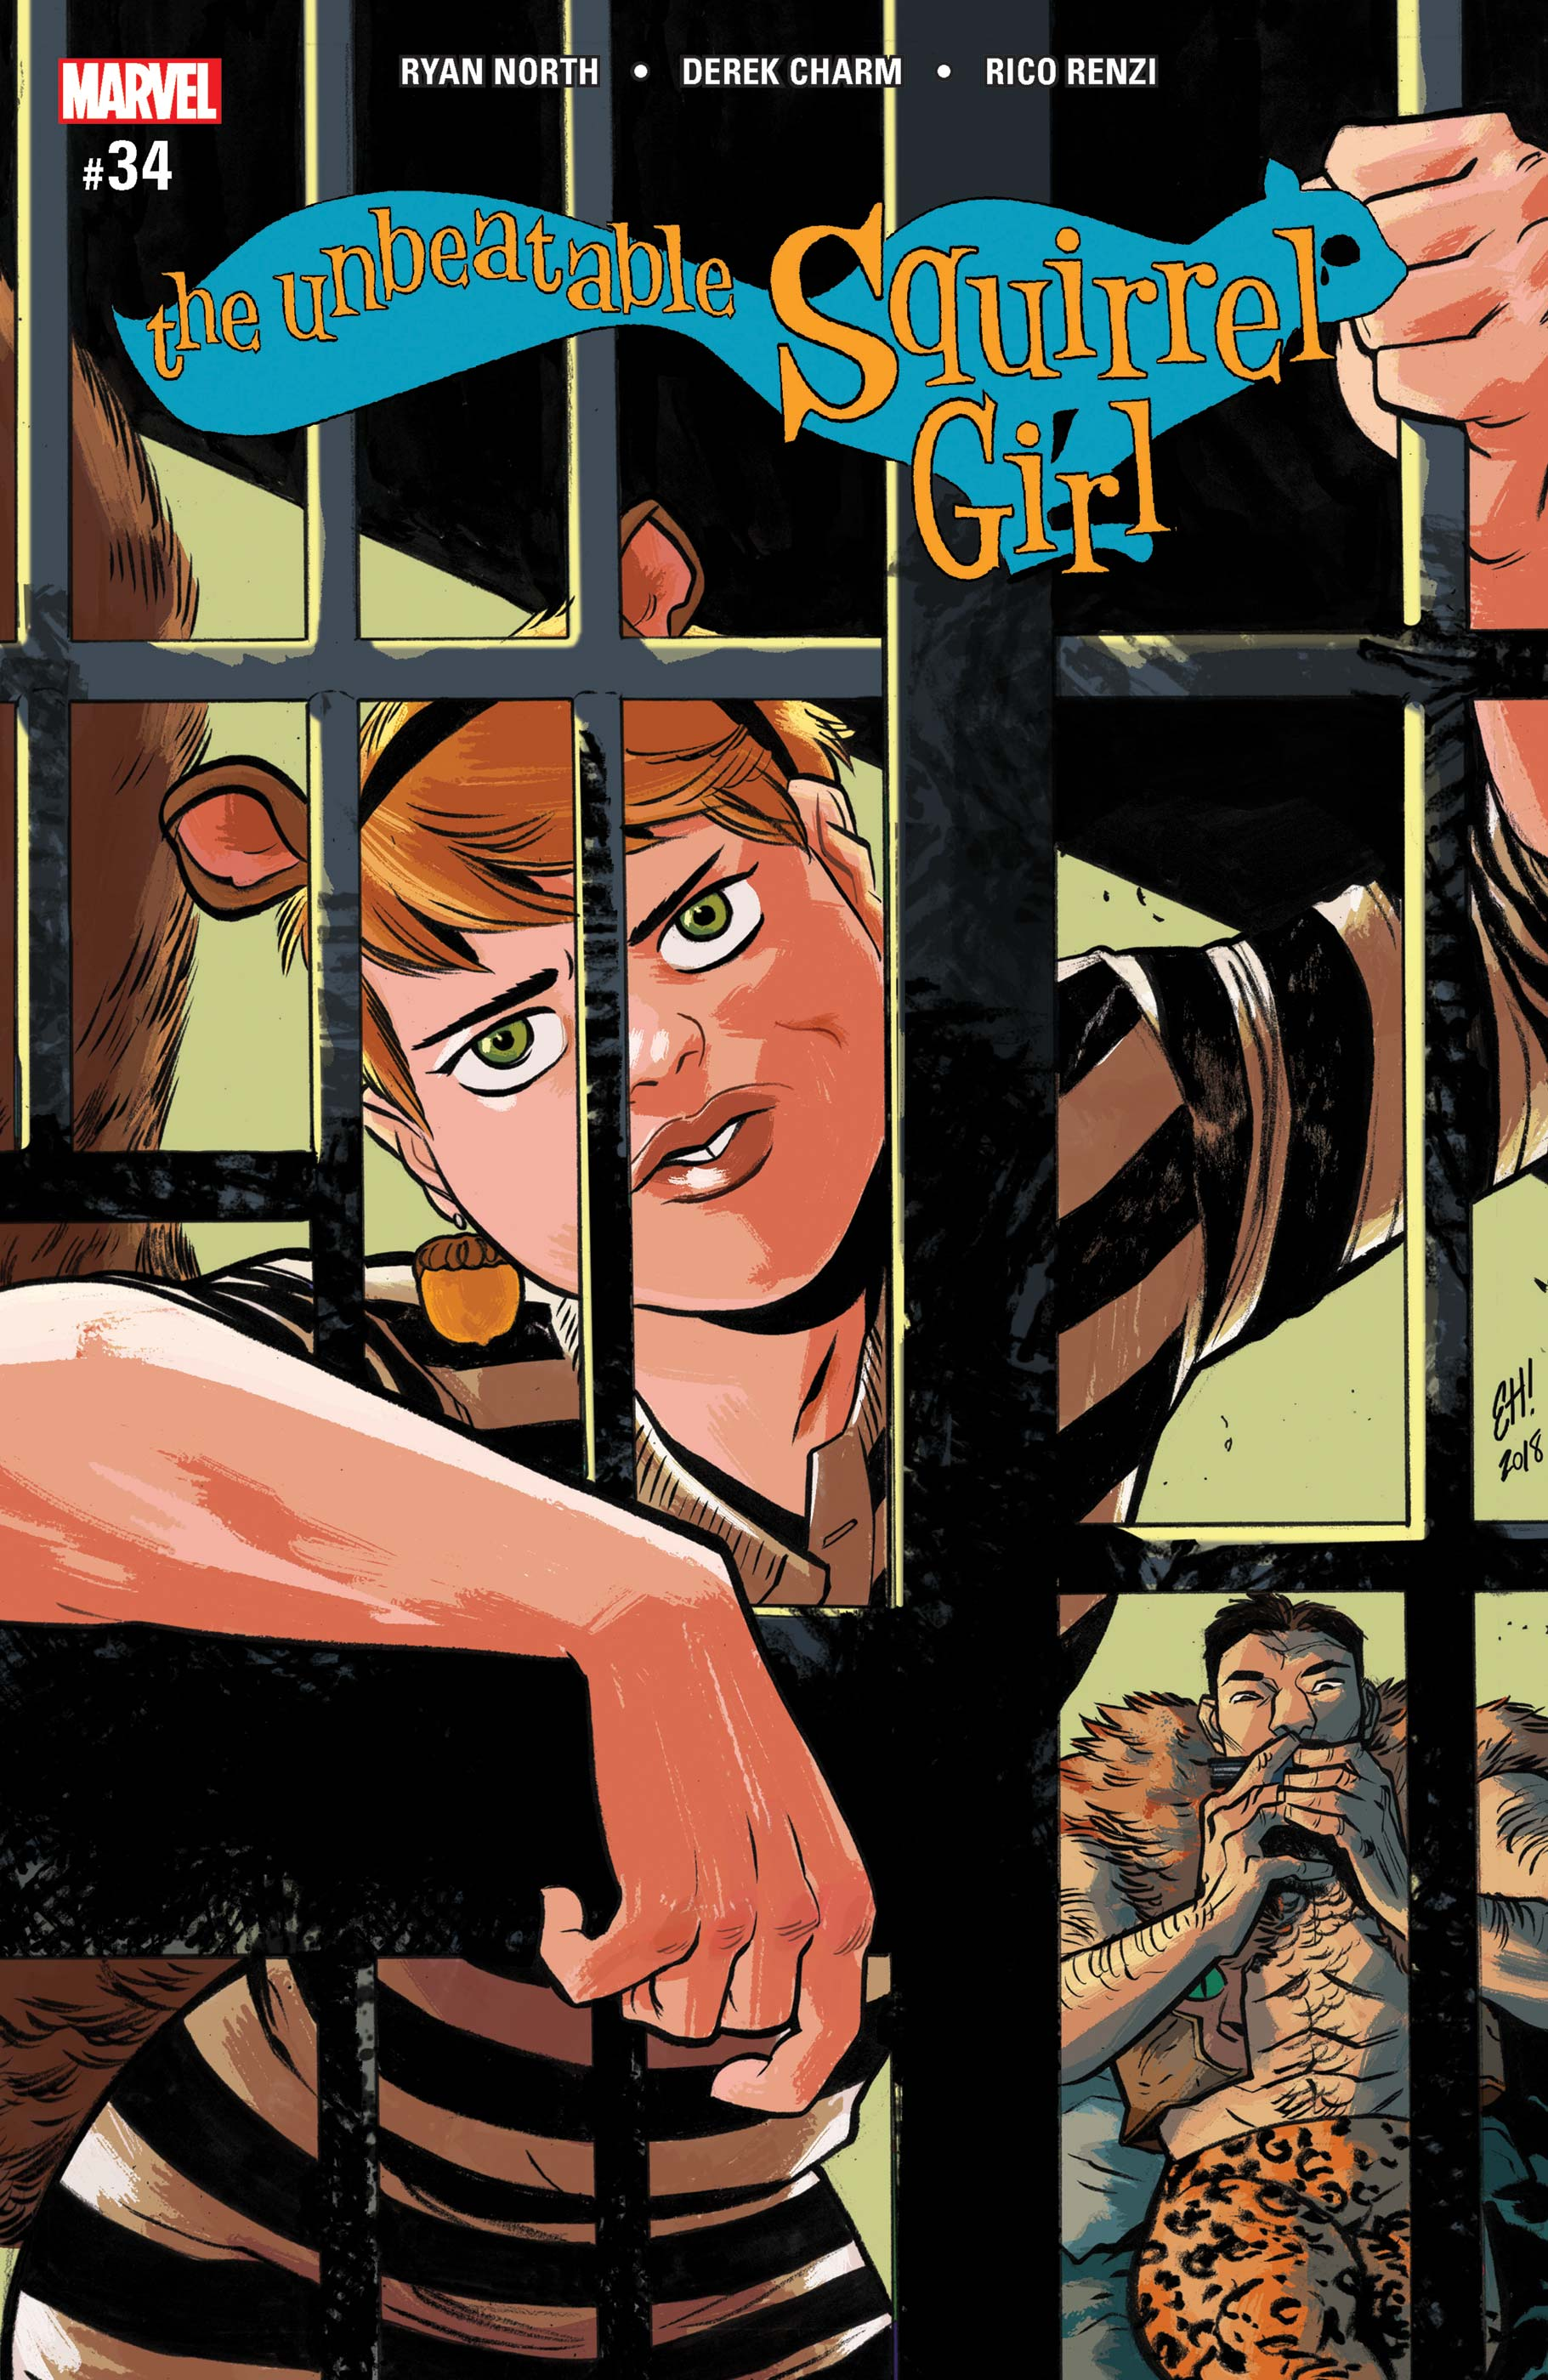 The Unbeatable Squirrel Girl (2015) #34